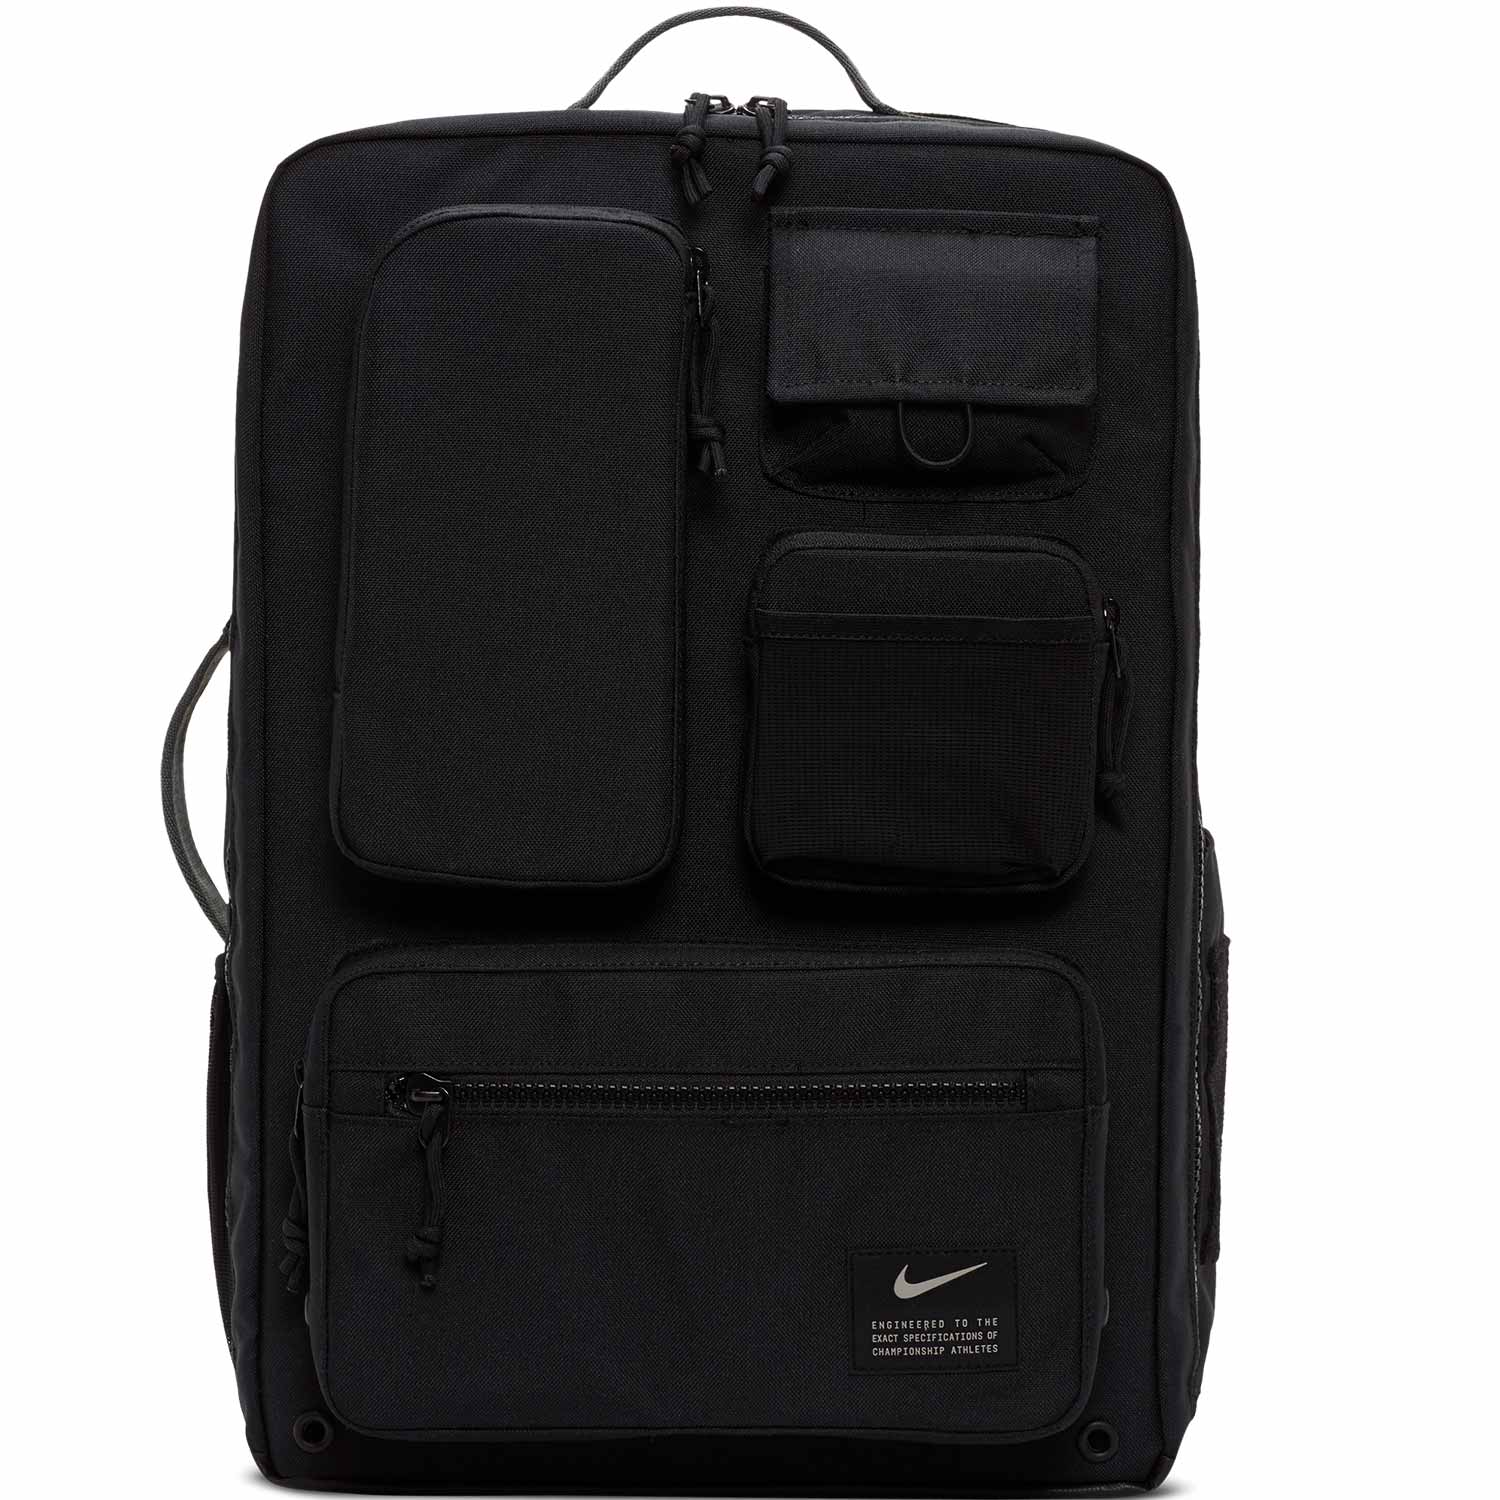 NIKE UTILITY ELITEBackpack